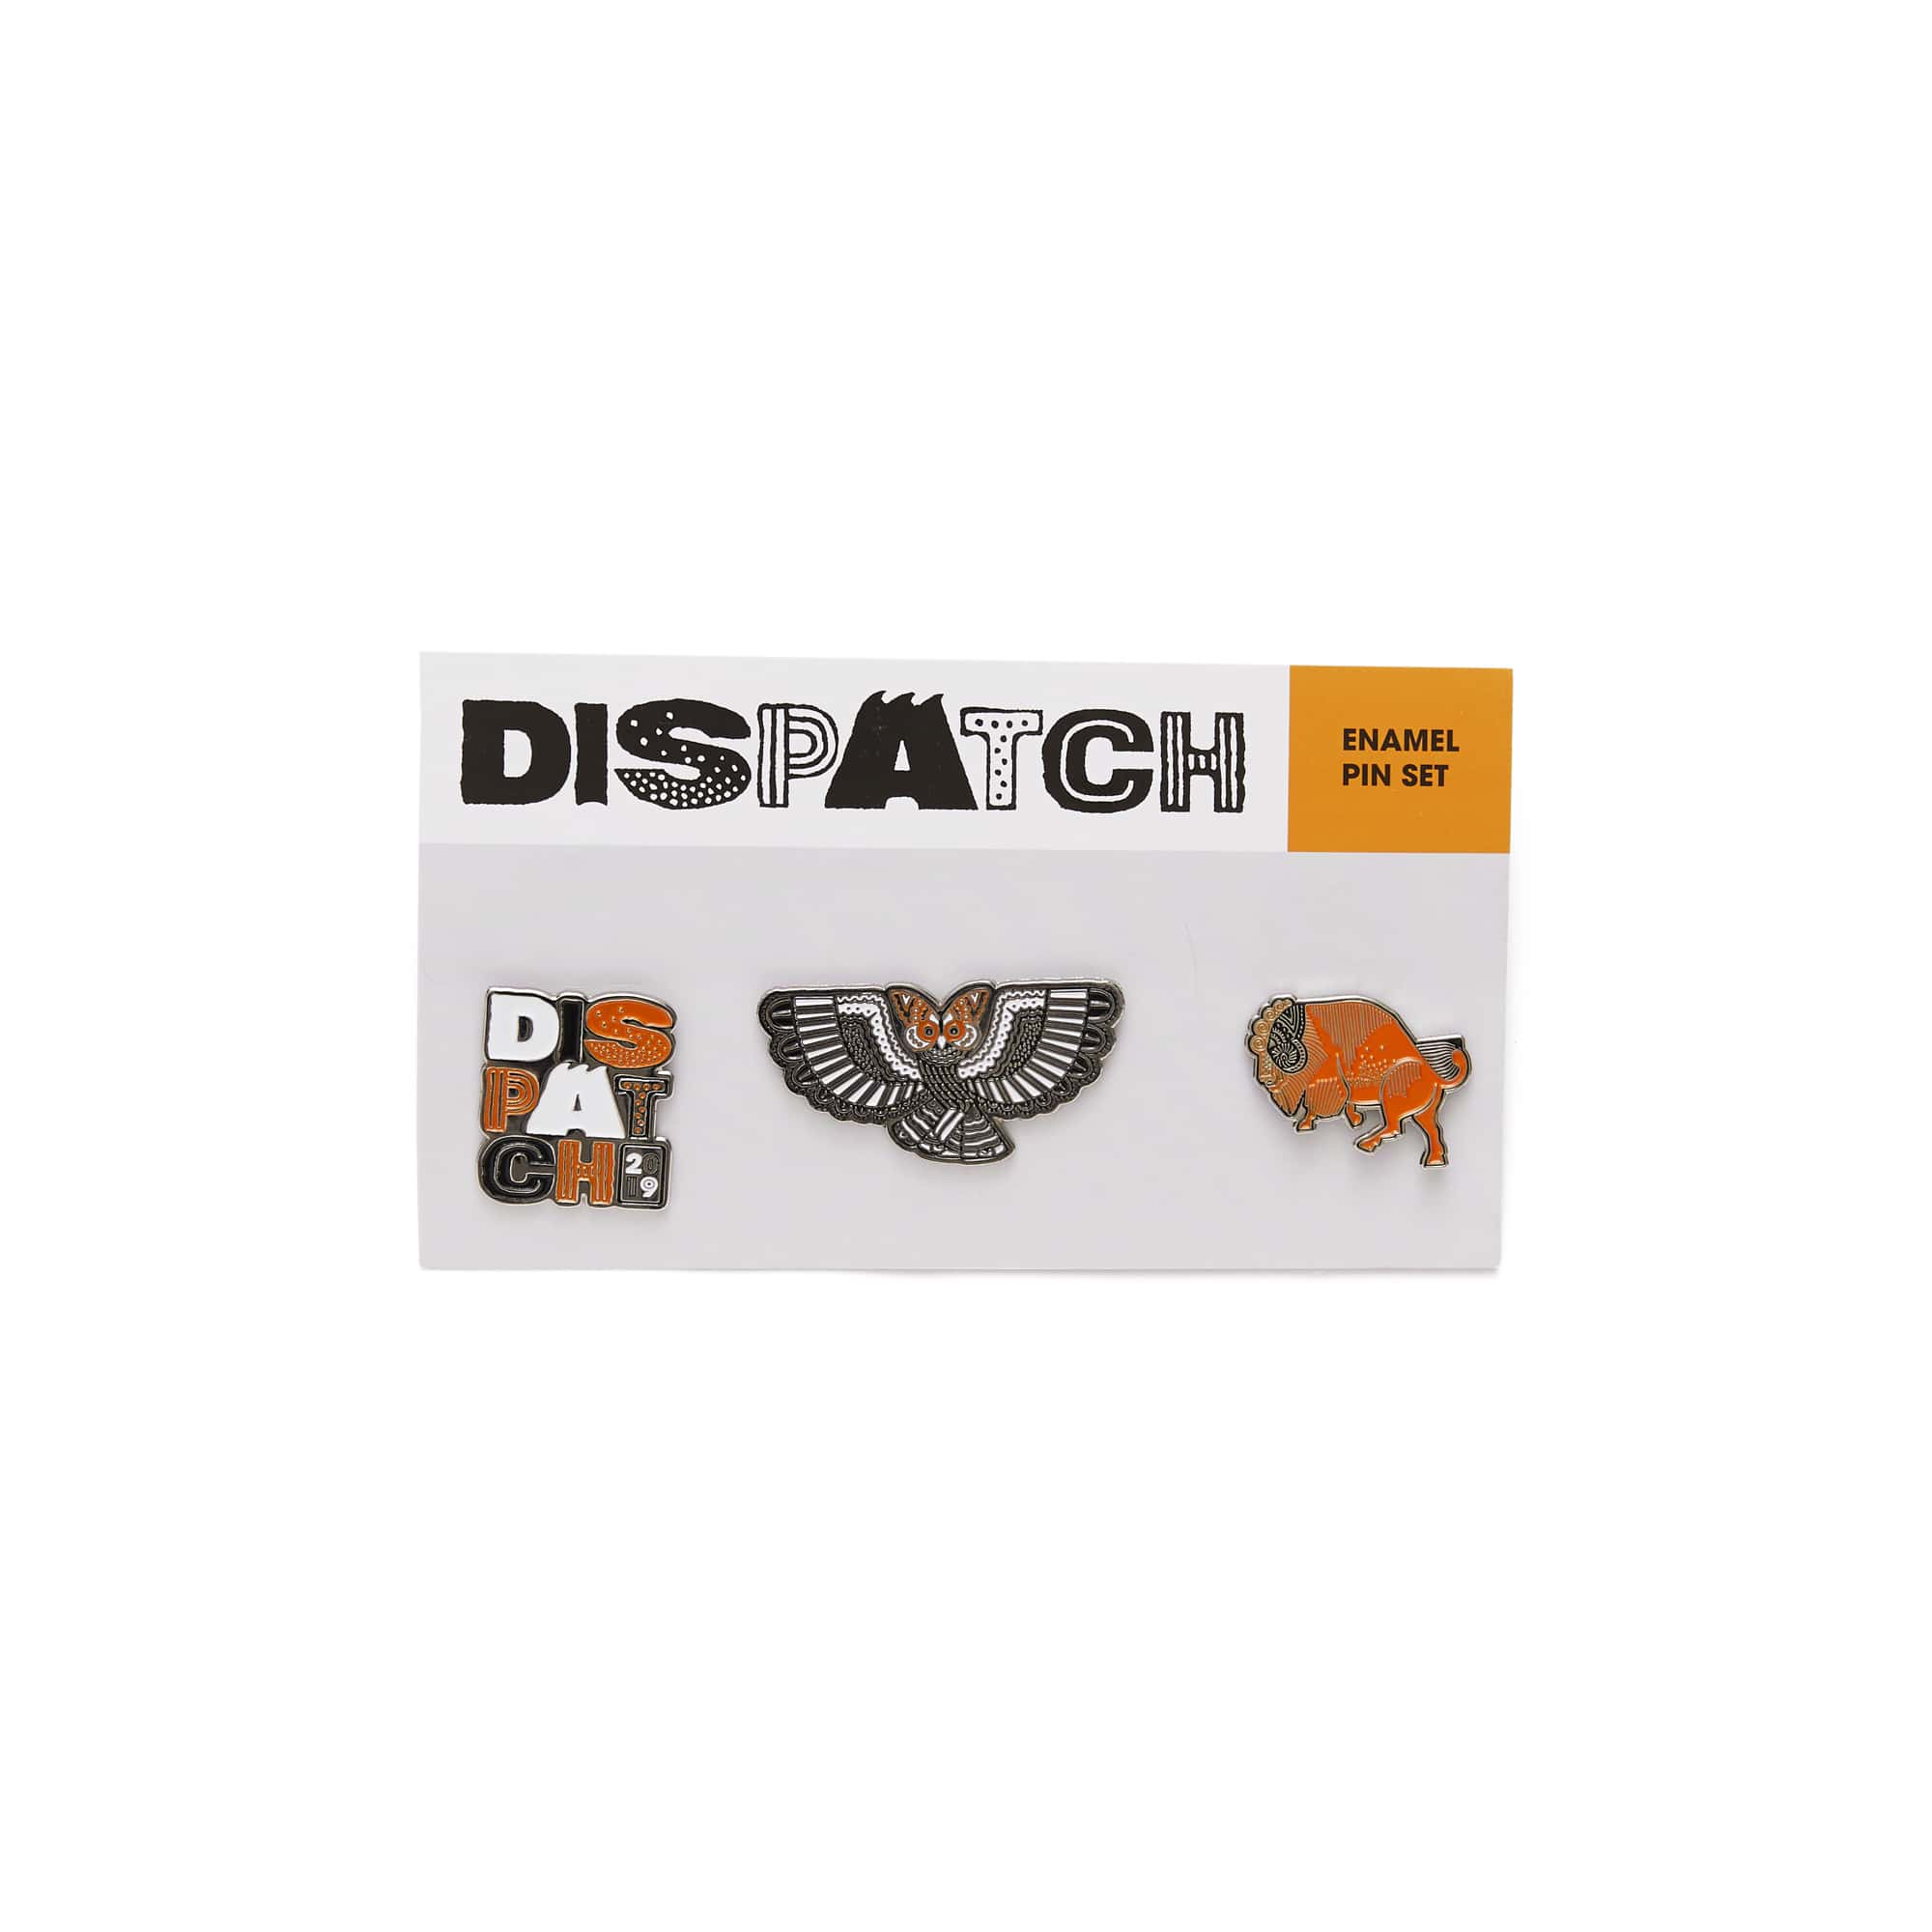 'Dispatch' Enamel Pin Set